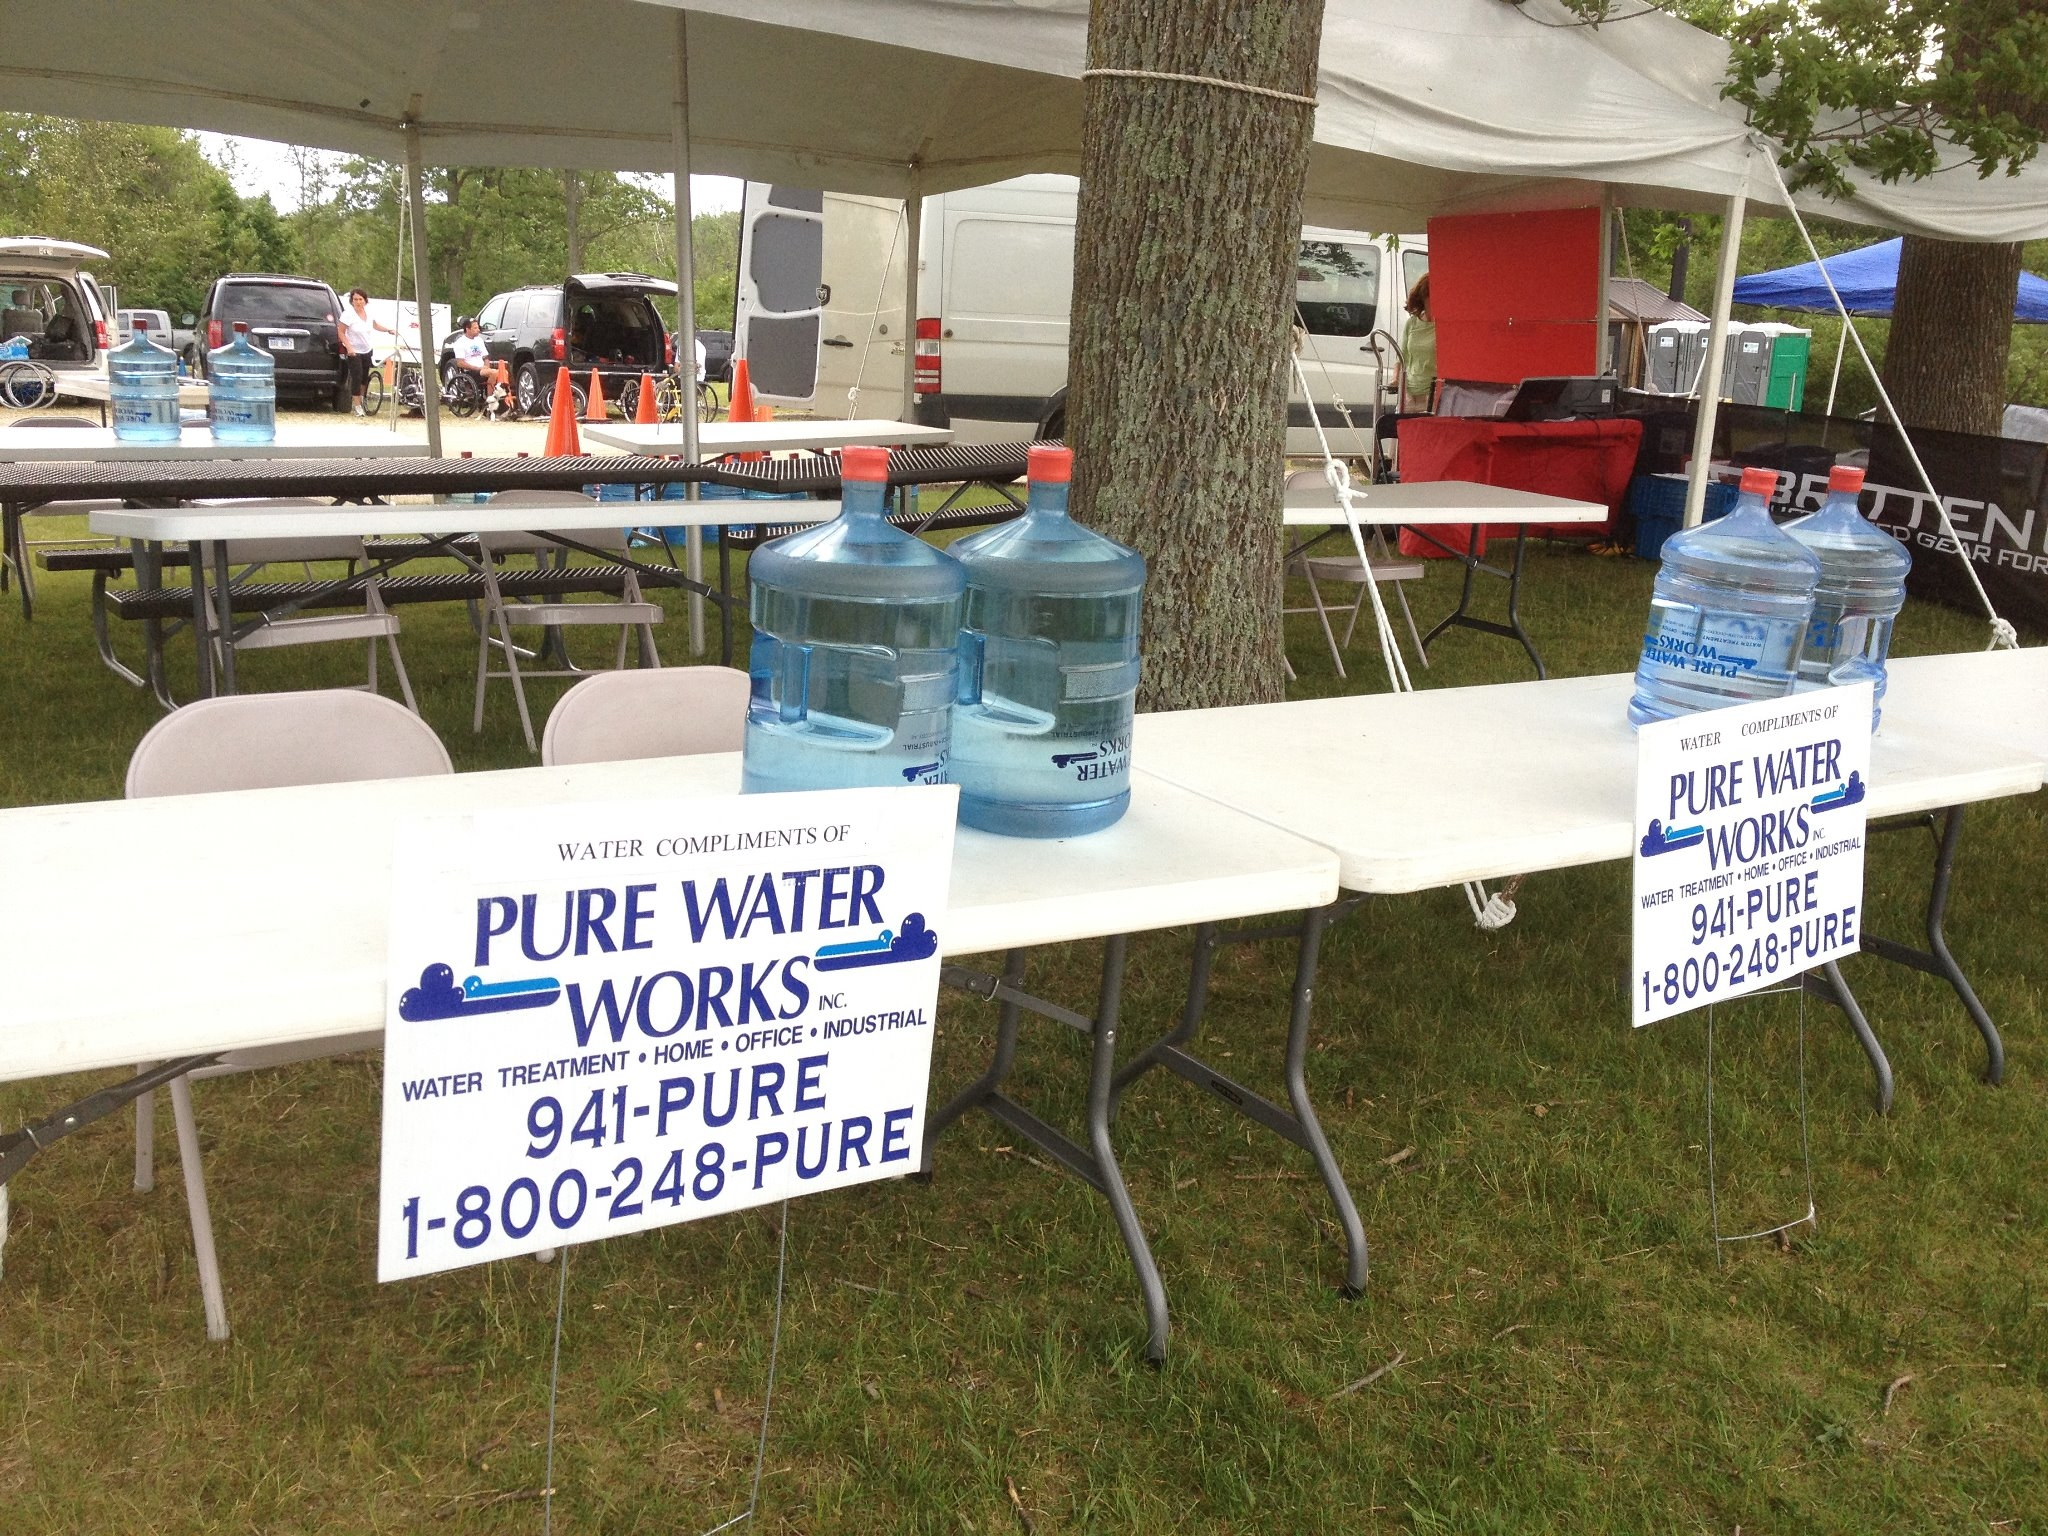 Pure Water Works, Inc. image 6